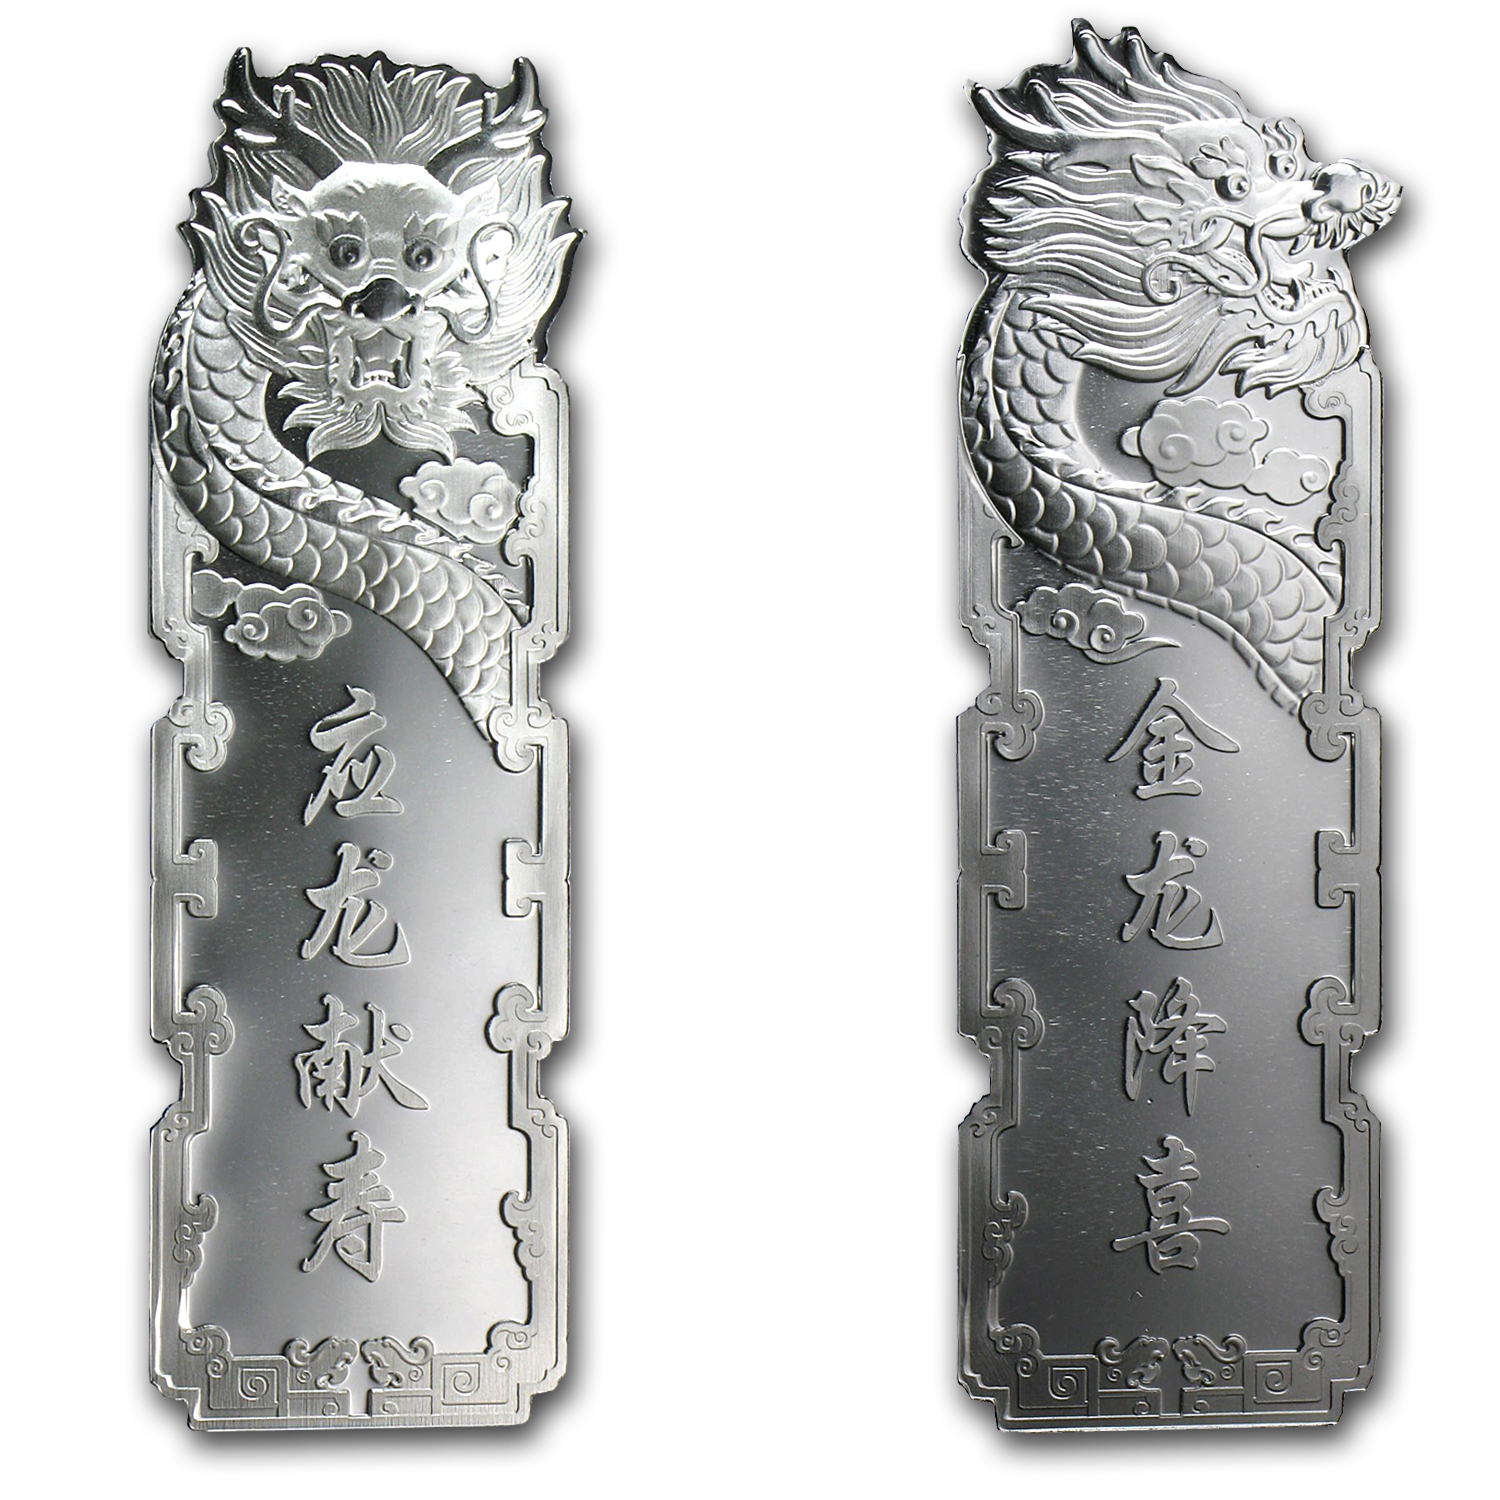 20 gram Silver Bar - Year of the Dragon (2012/Colorized/5 pc.)